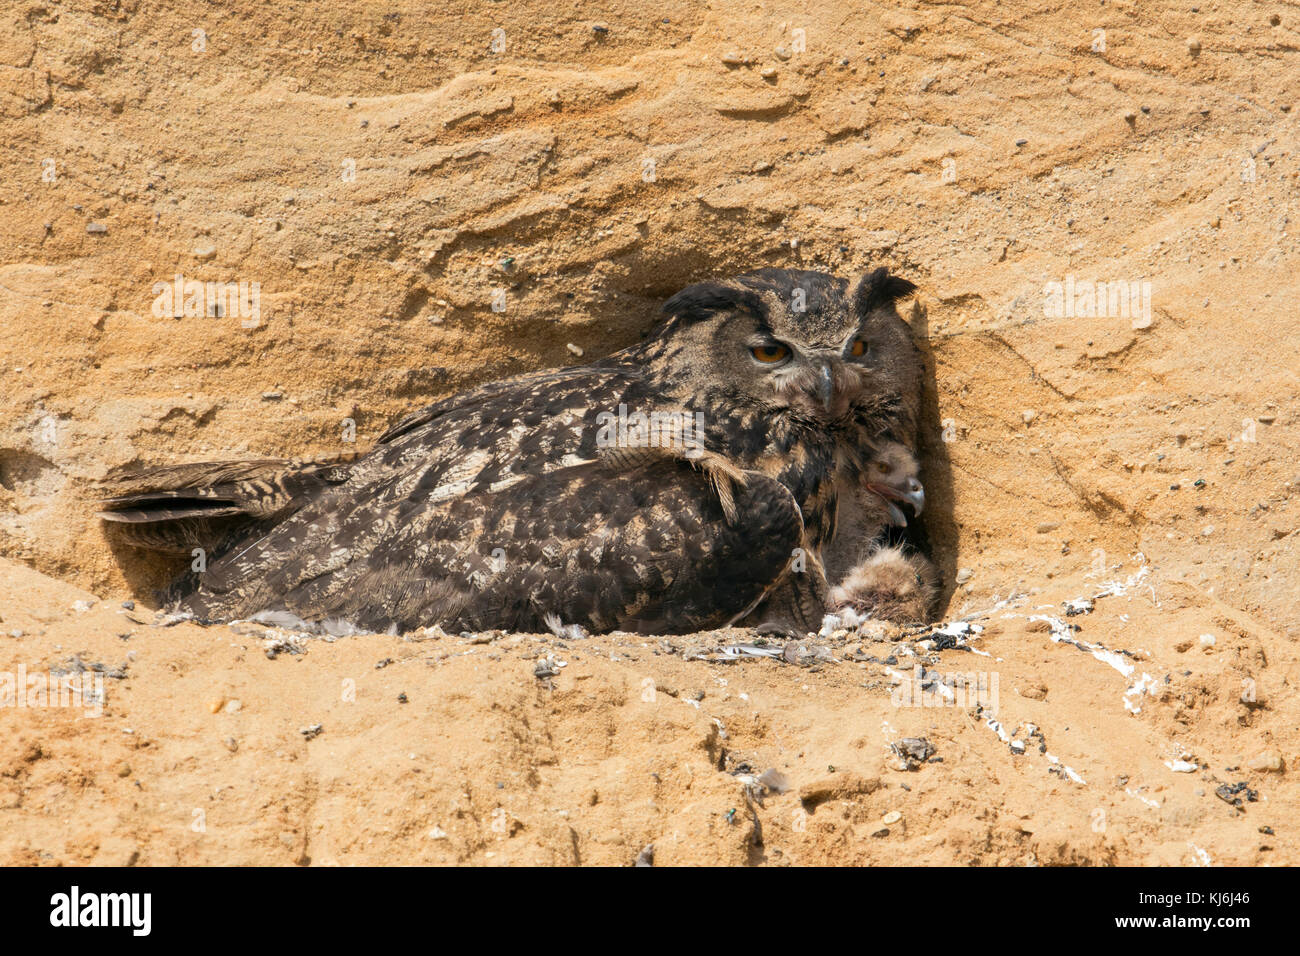 Eurasian Eagle Owl / Europaeischer Uhu ( Bubo bubo ), adult at its breeding site in a sand pit,  gathering freshly - Stock Image